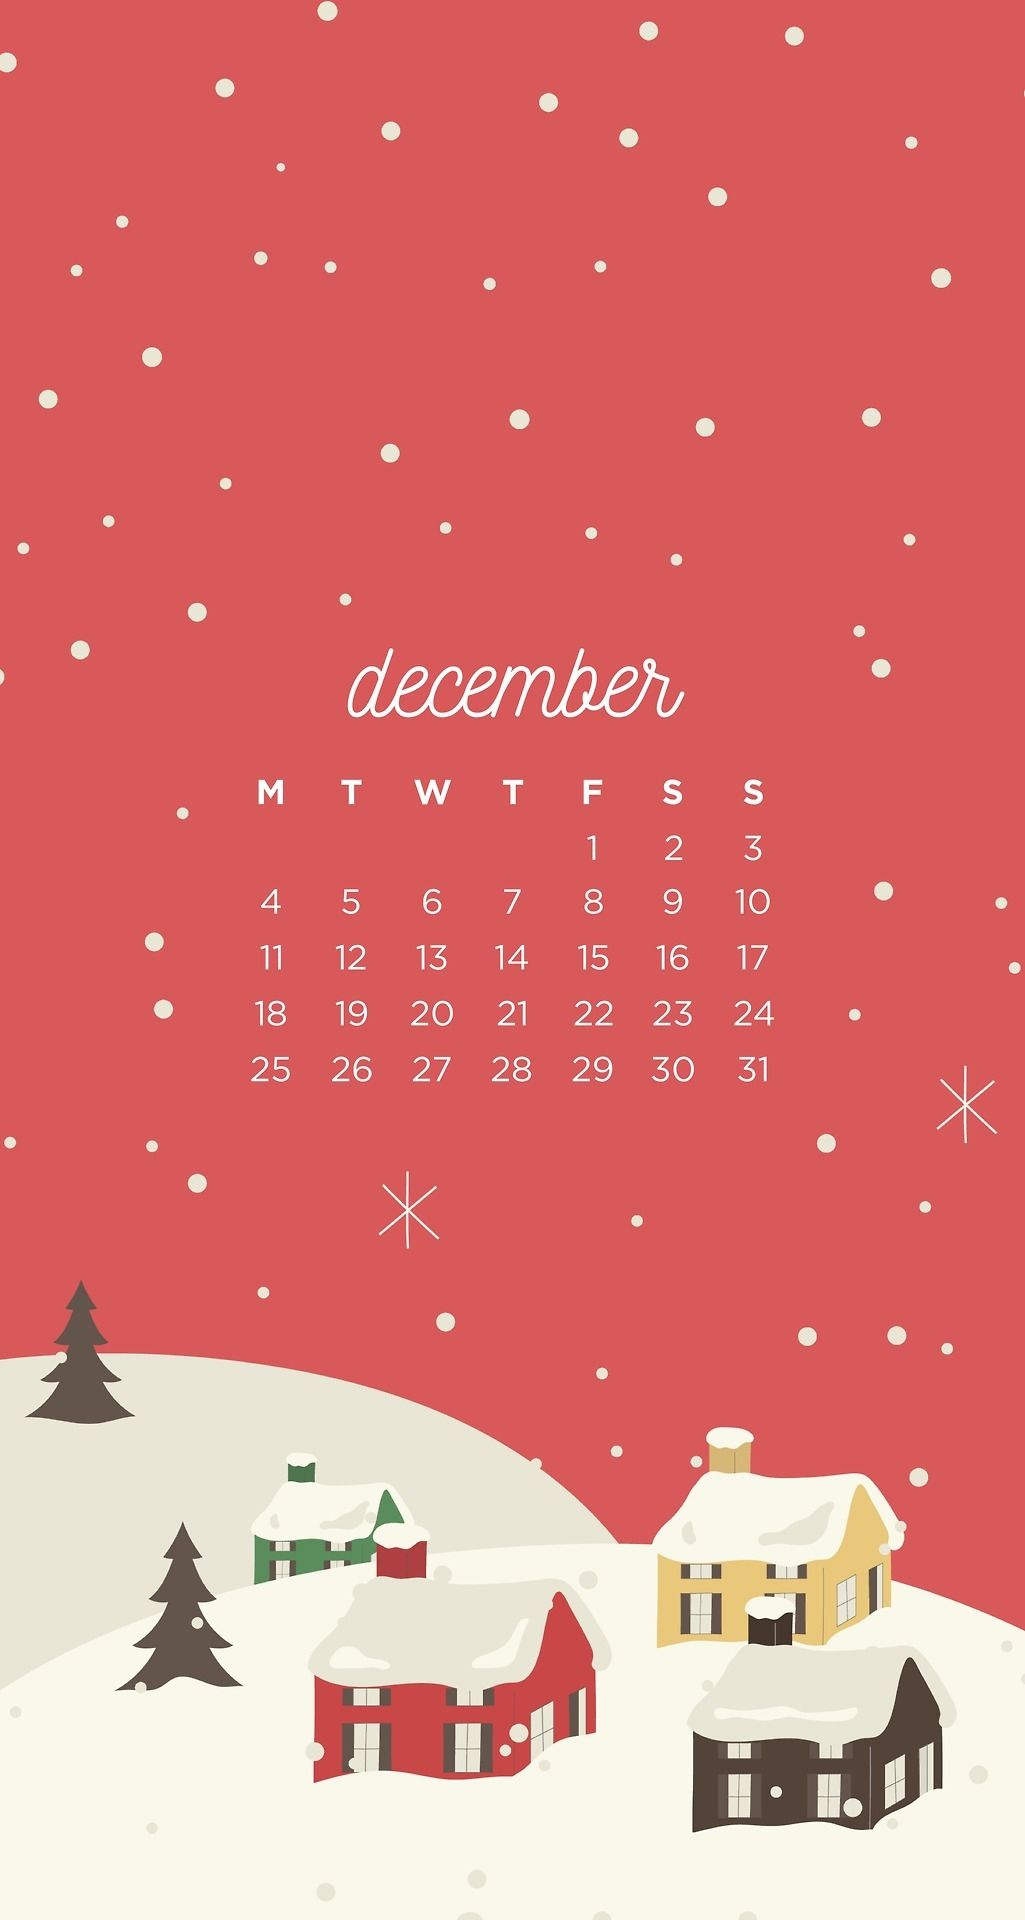 December Christmas Town Phone Wallpapers By Emma Studies Cute Christmas Wallpaper Christmas Wallpaper Iphone Cute Wallpaper Iphone Christmas